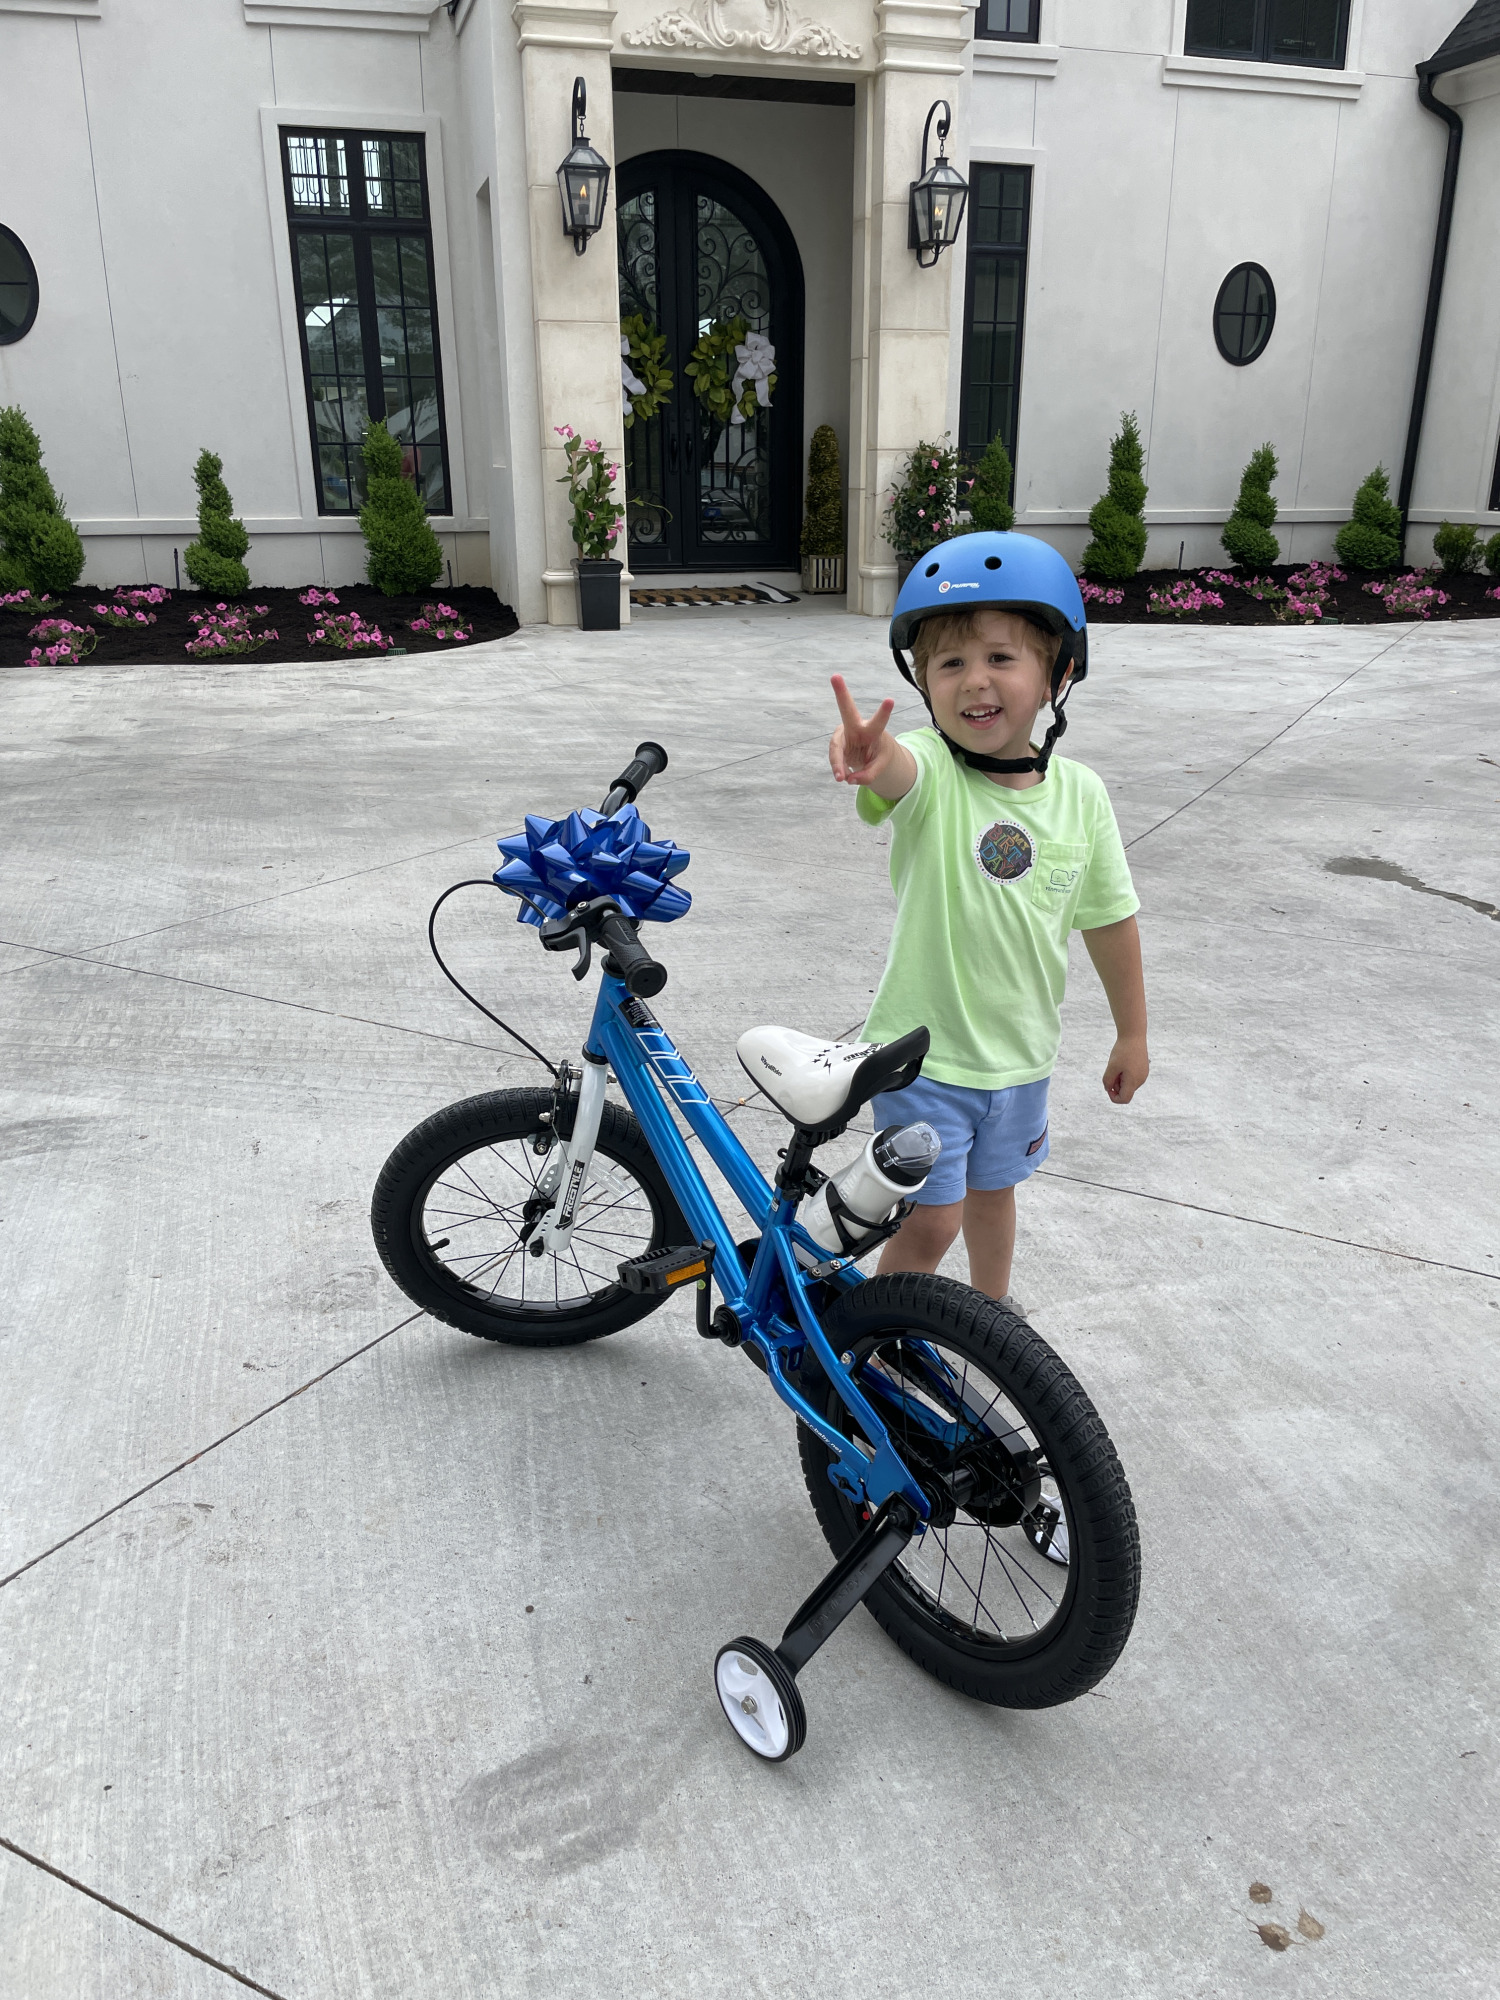 little boy gift ideas, bikes for little boys, bikes with training wheels, Luke gemma | Instagram Recap by popular US life and style blog, The Sweetest Thing: image of a little boy standing next to a blue bike with training wheels and holding up a the peace sign with his fingers and wearing a blue bike helmet, neon green shirt, and blue shorts.